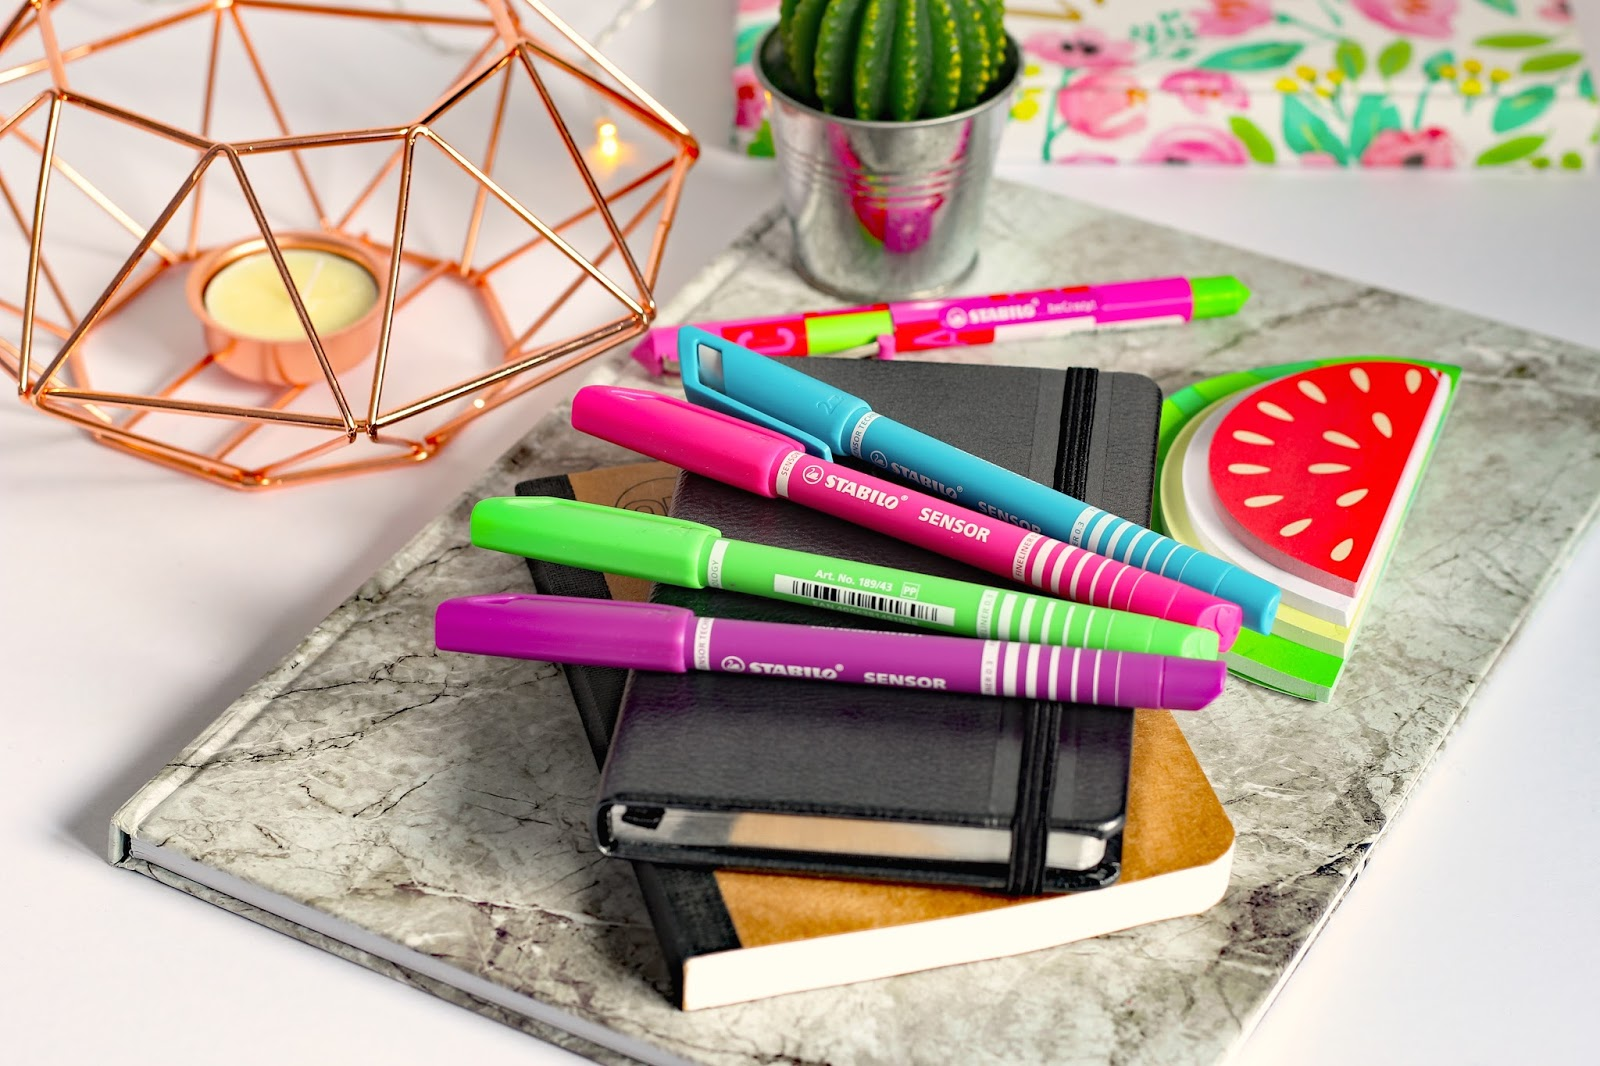 Why I Love Stationery And How It Benefits My Mental Health kids crafts national week day pen paper notebooks sticky notes gifts cheap presents shop online blogger funny